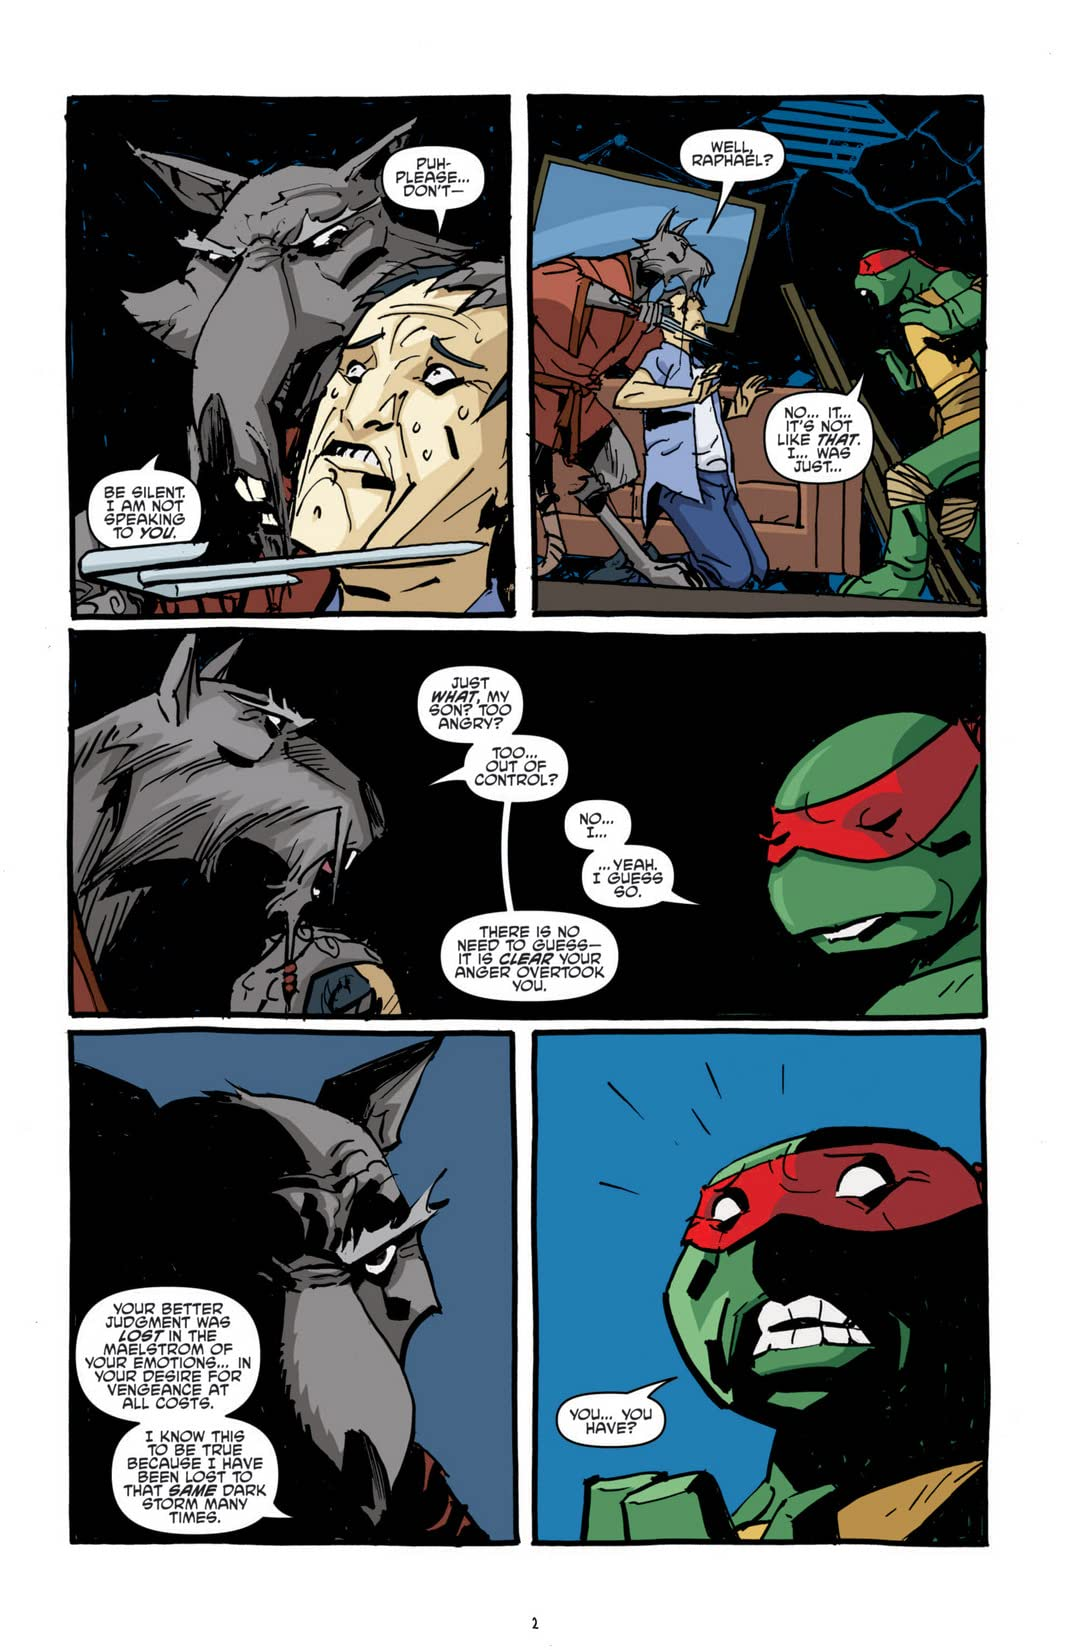 Teenage Mutant Ninja Turtles #14